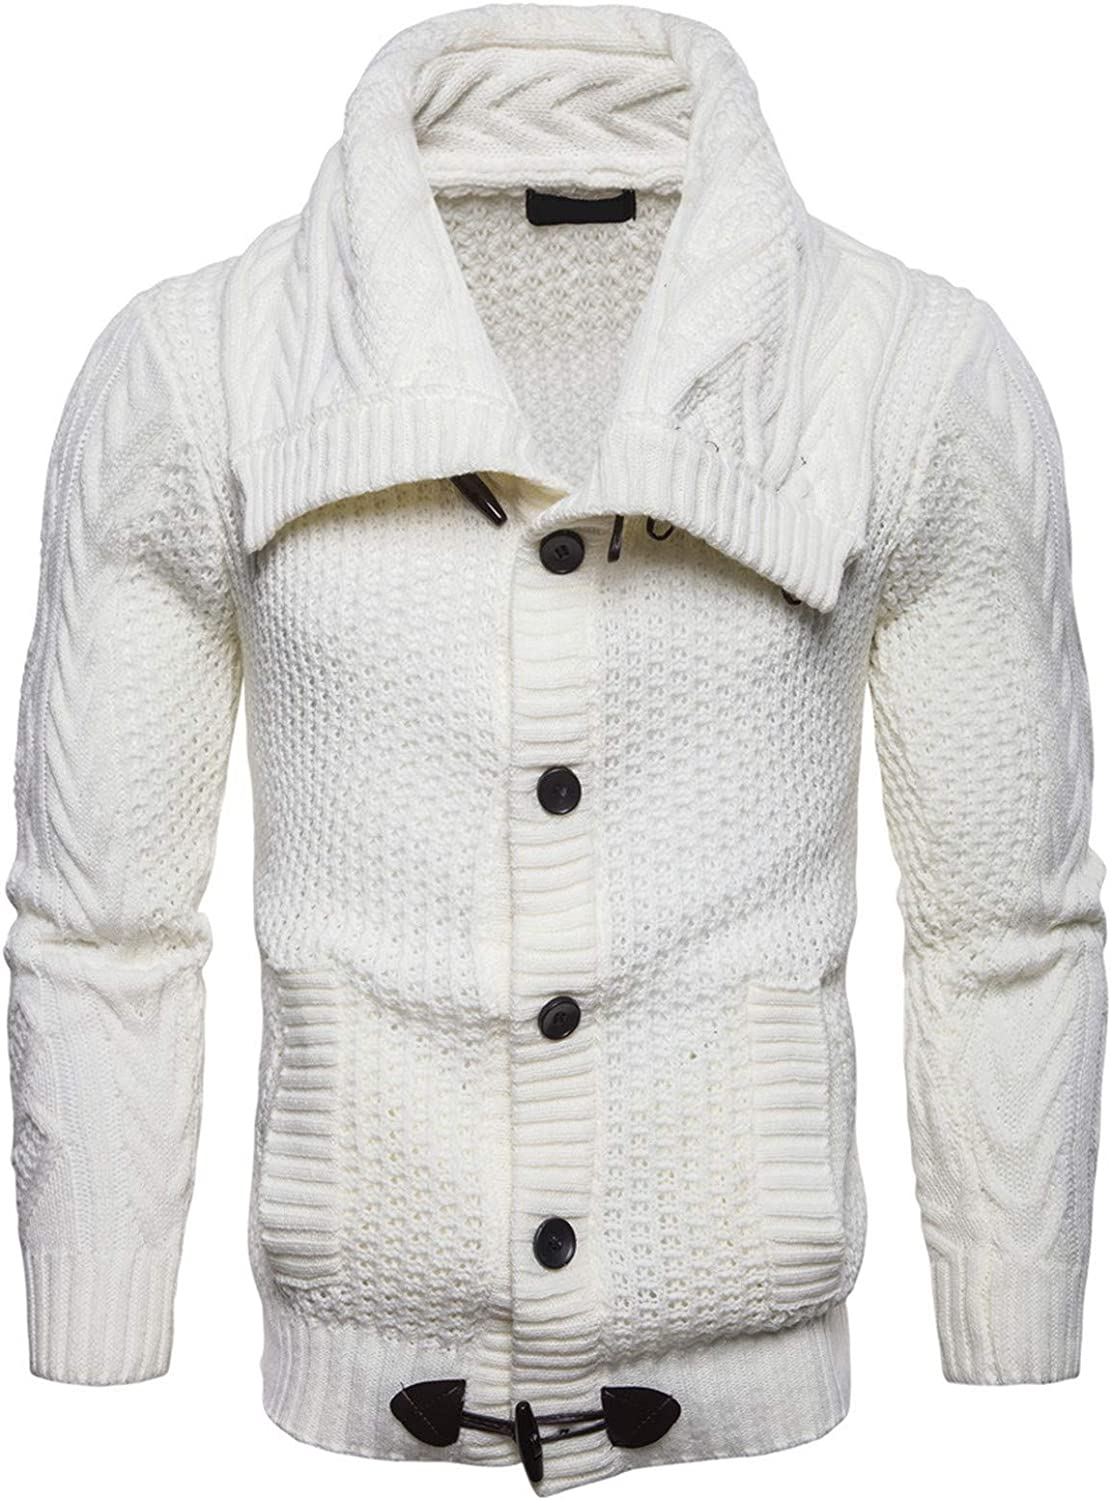 EverNight Mens Slim Fit Knit Sweater,Soft Knitwear Shawl Collar Cardigan,Solid Color Buttons Tops with Ribbing Edge,White,XXL